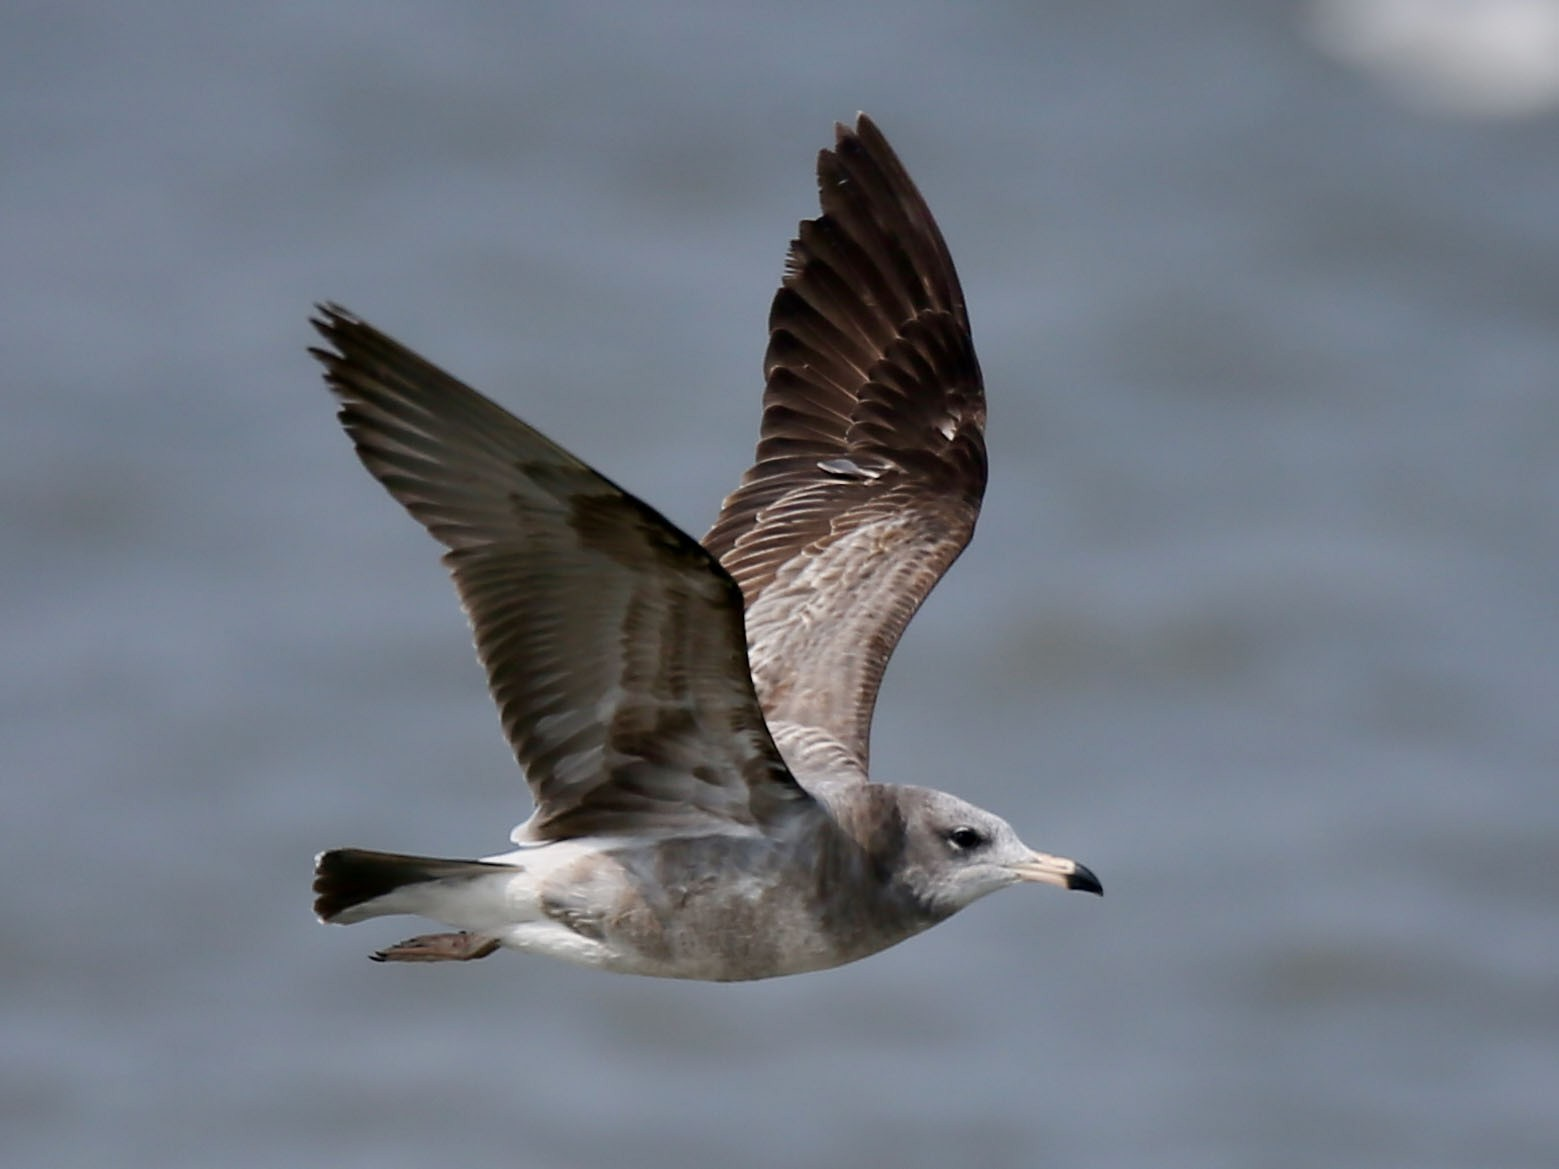 Black-tailed Gull - Ting-Wei (廷維) HUNG (洪)